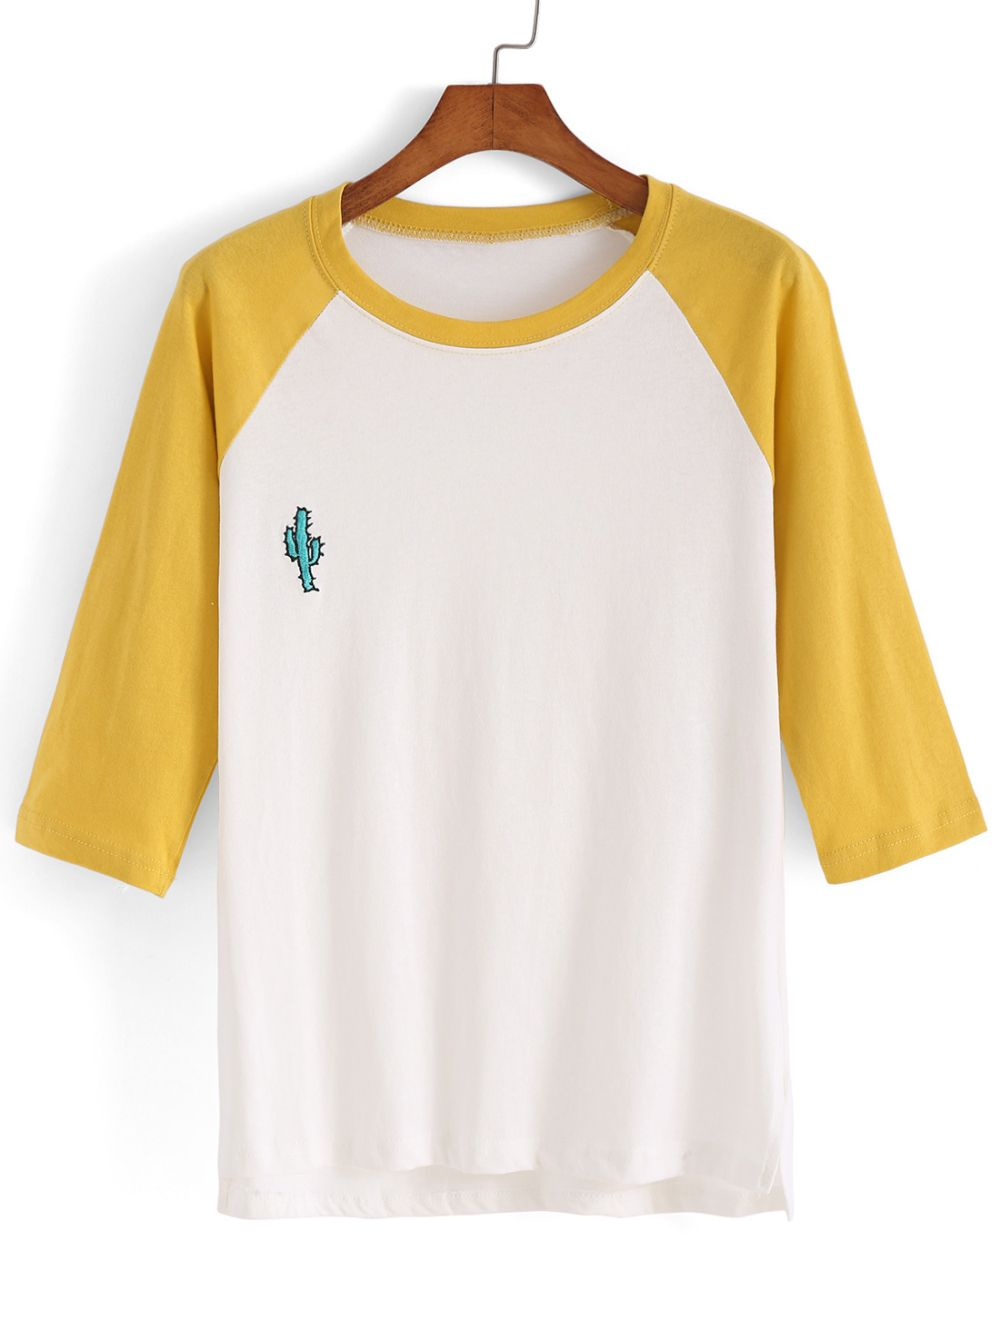 Dip Hem Colorblock Embroidered Tshirt